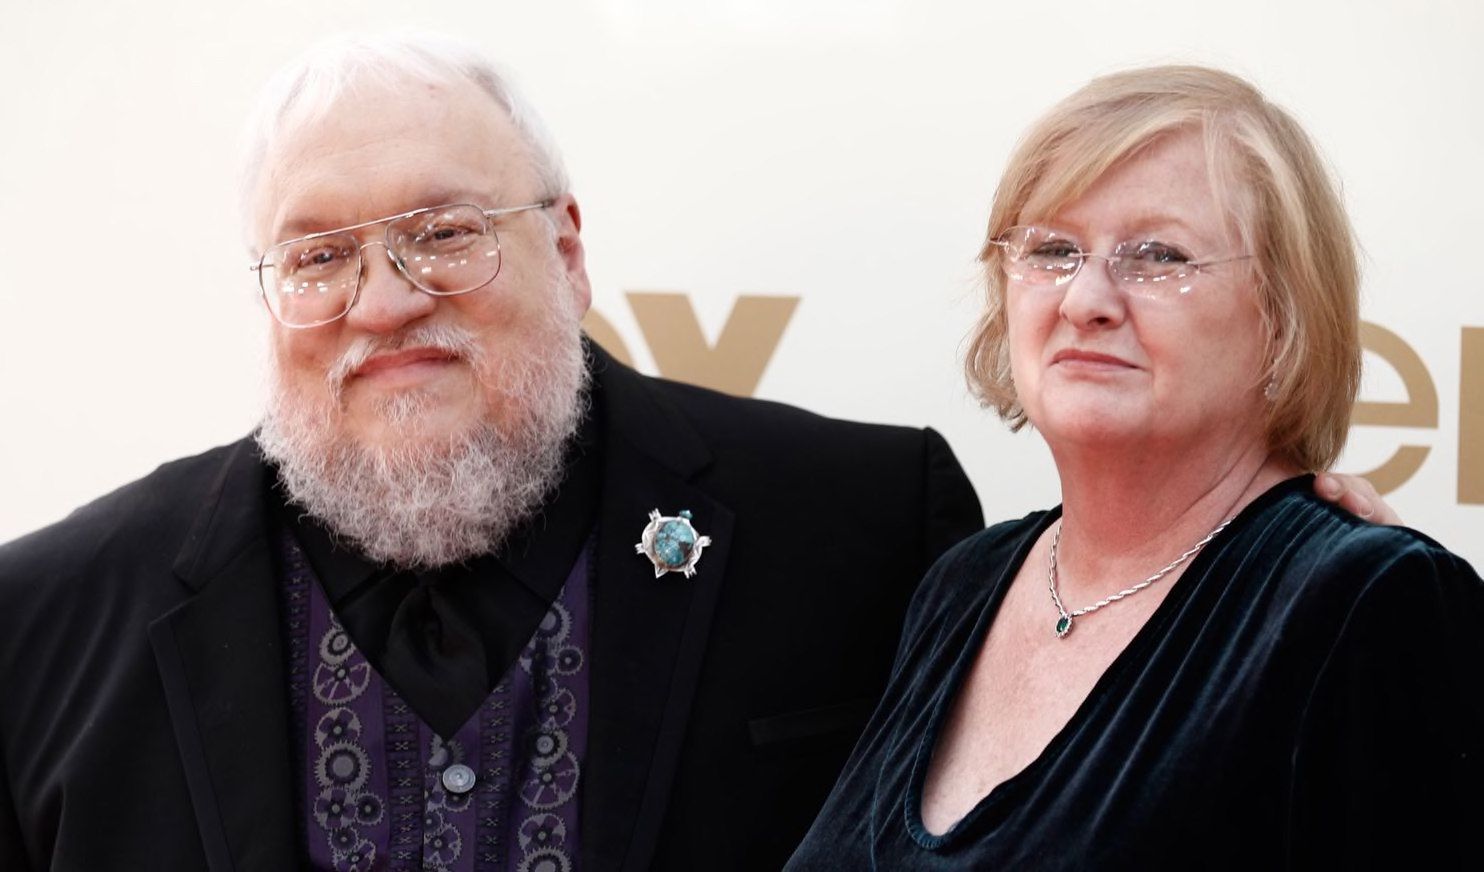 George R.R. Martin and Parris McBride arrive at the 63rd Primetime Emmy Awards on Sept. 18, 2011, in Los Angeles. (Matt Sayles/AP)